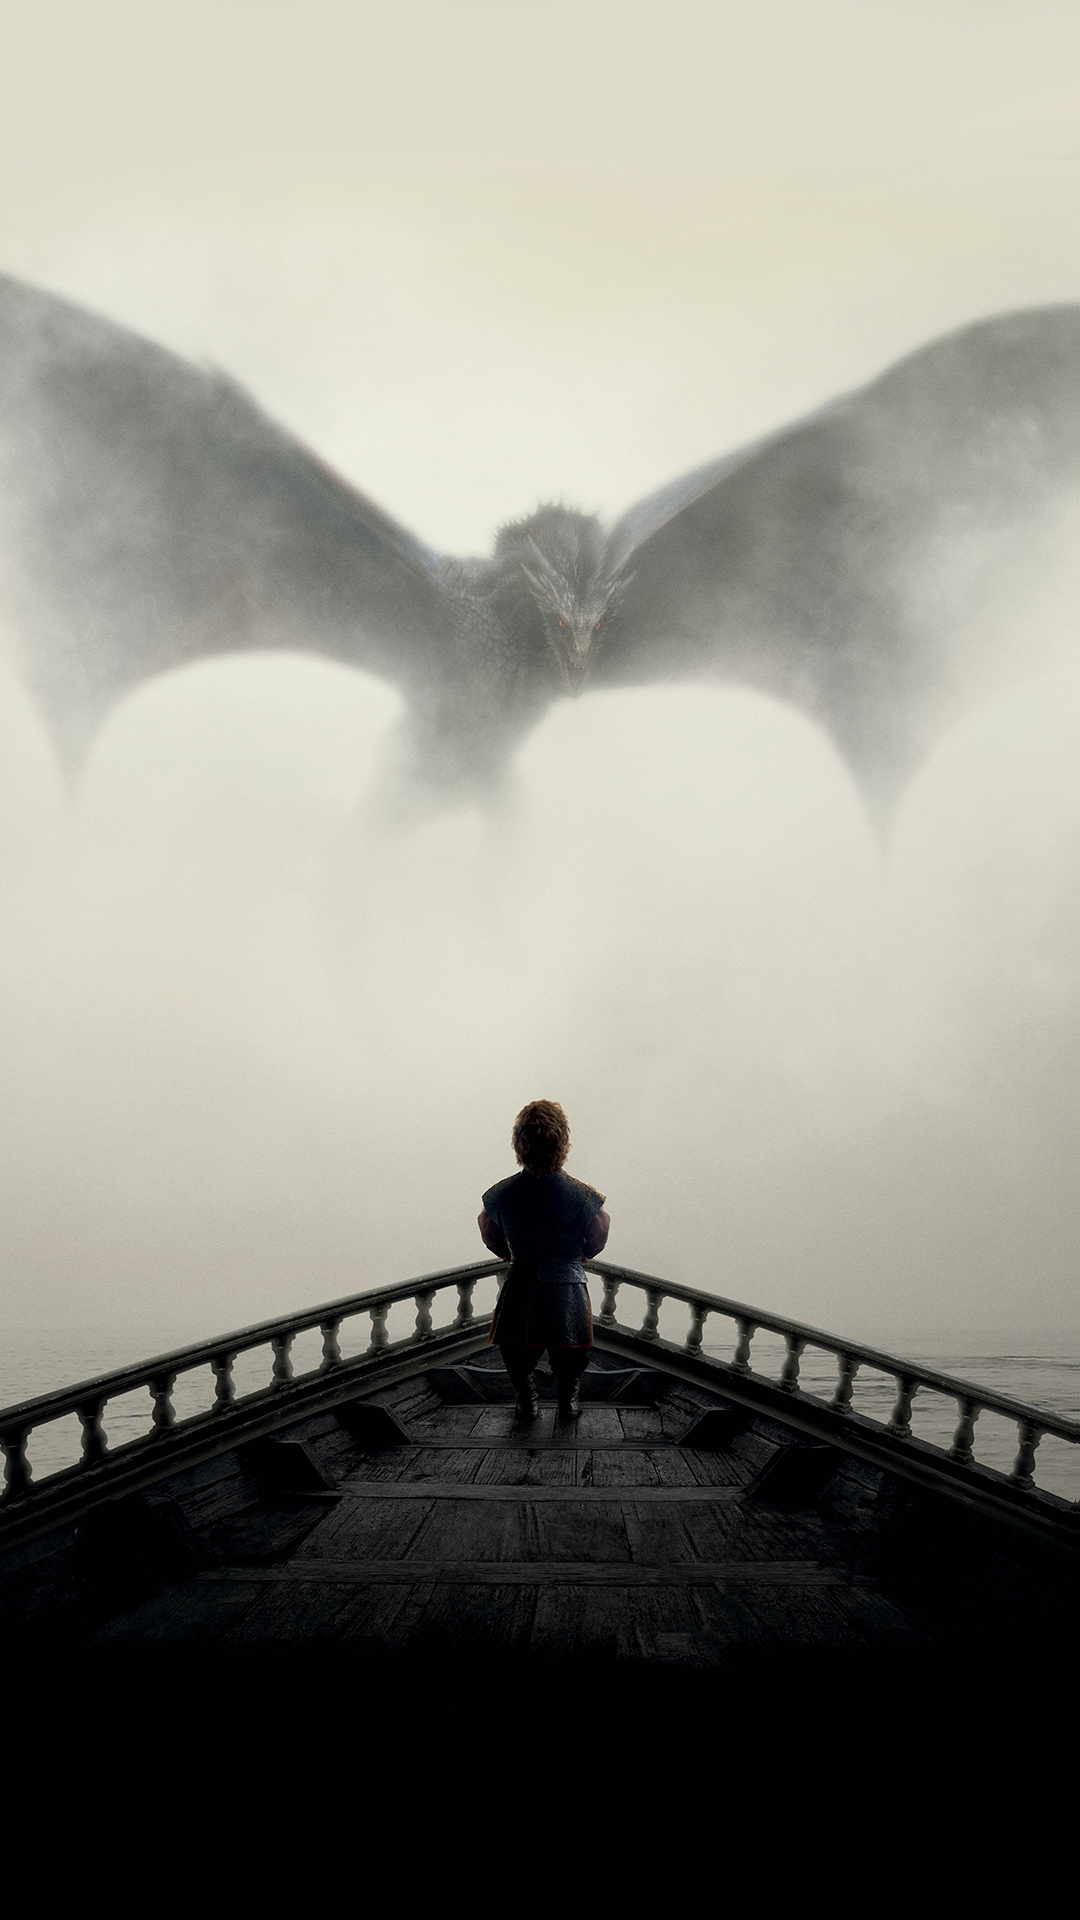 Game Of Thrones HD Wallpaper For Your Mobile Phone